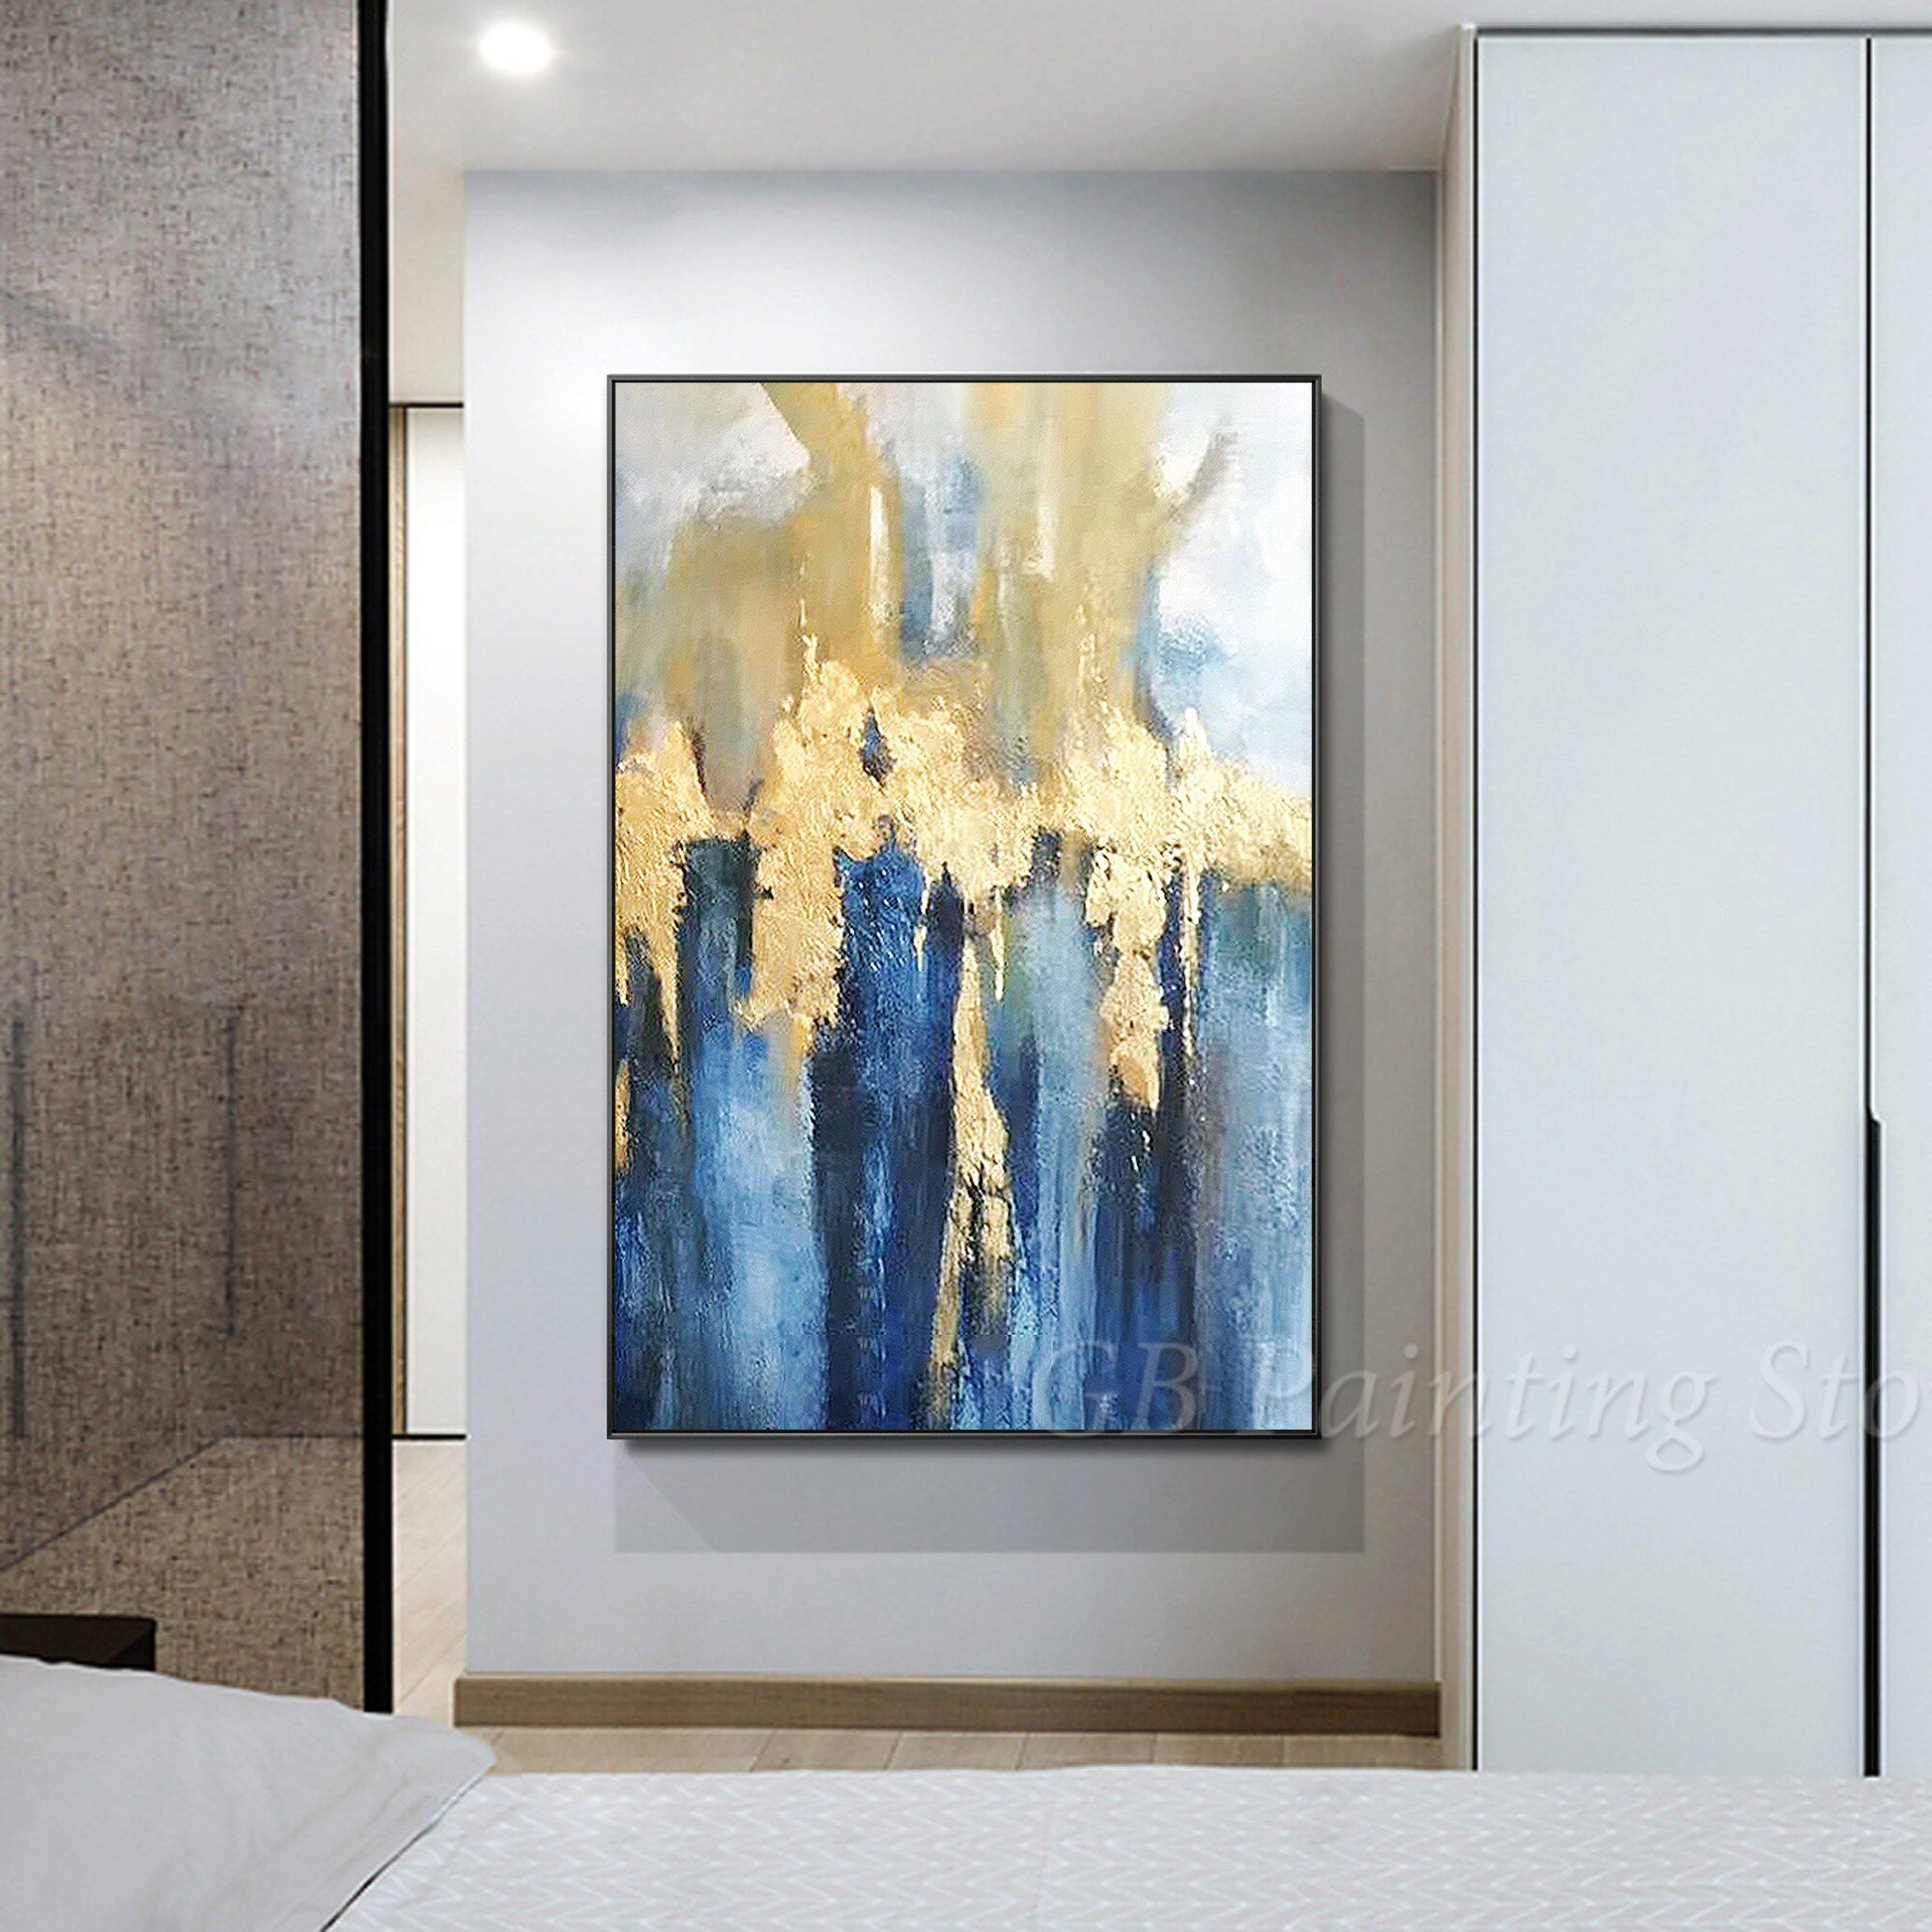 Cheap Painting Calligraphy Buy Quality Home Garden Directly From China Suppliers Modern Gold Abstract Painting Abstract Painting Acrylic Diy Art Painting